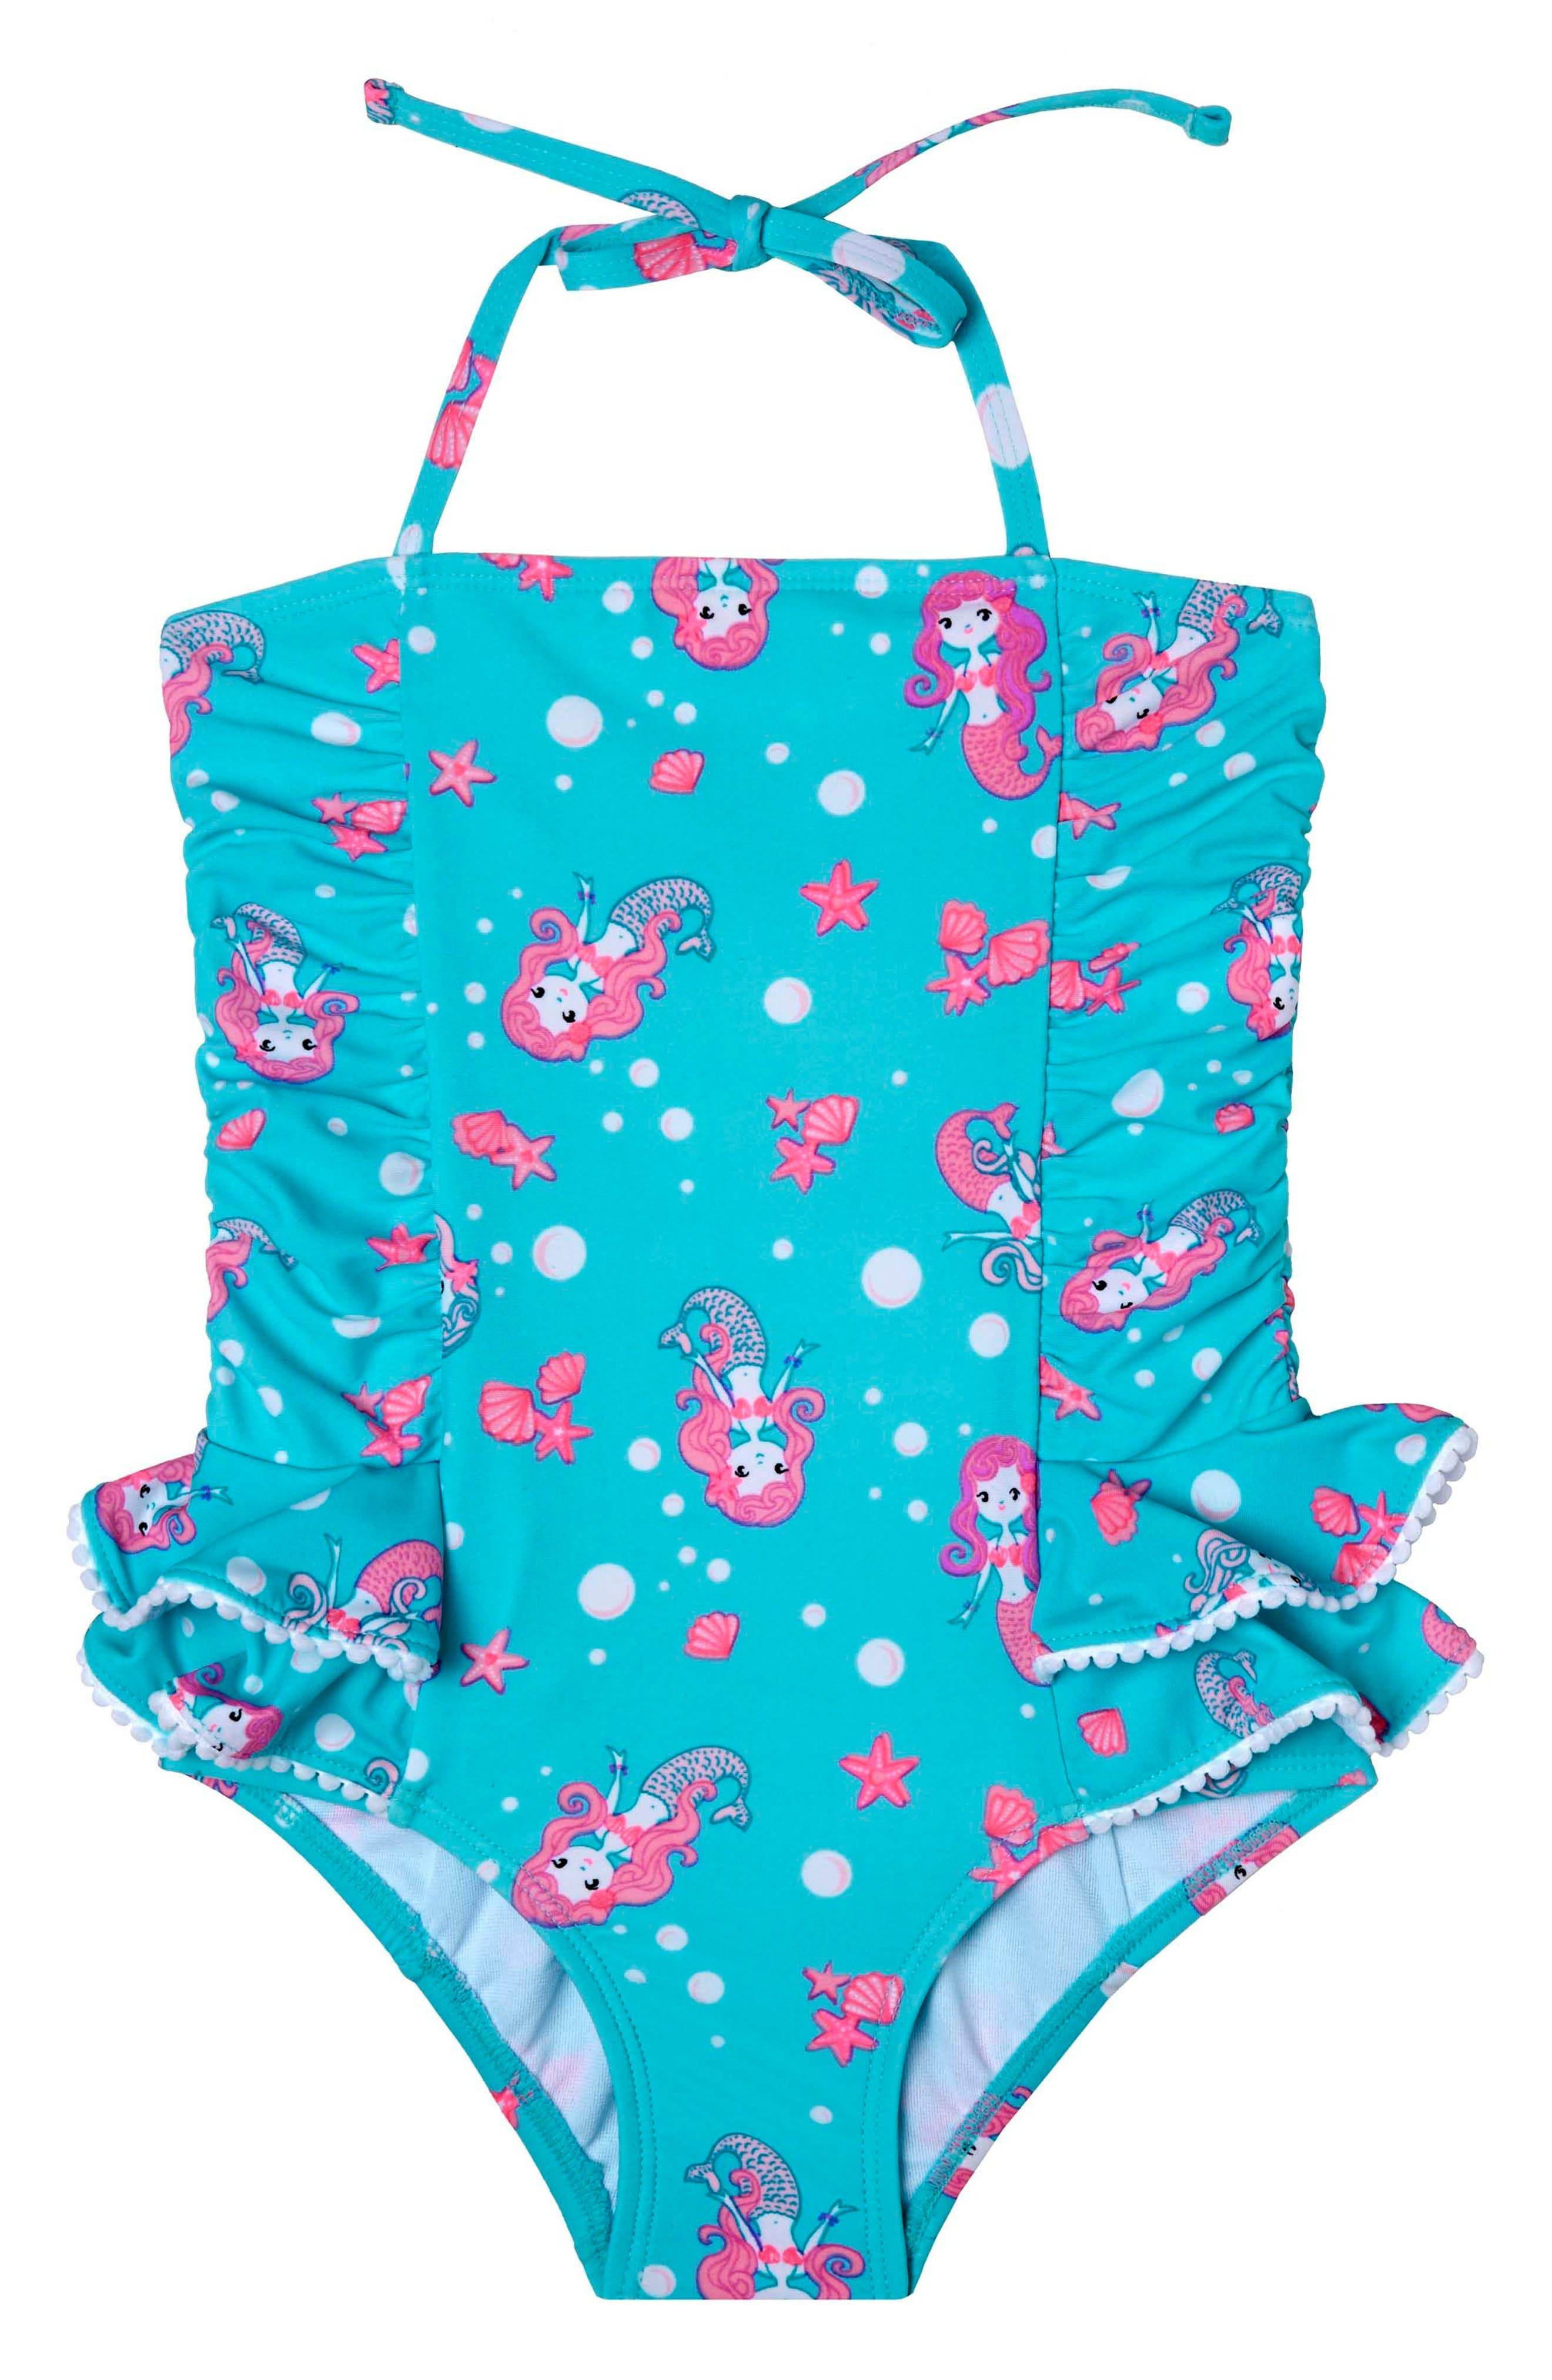 Alternate Image 1 Selected - Hula Star Mermaid Crush One-Piece Swimsuit (Toddler Girls & Little Girls)